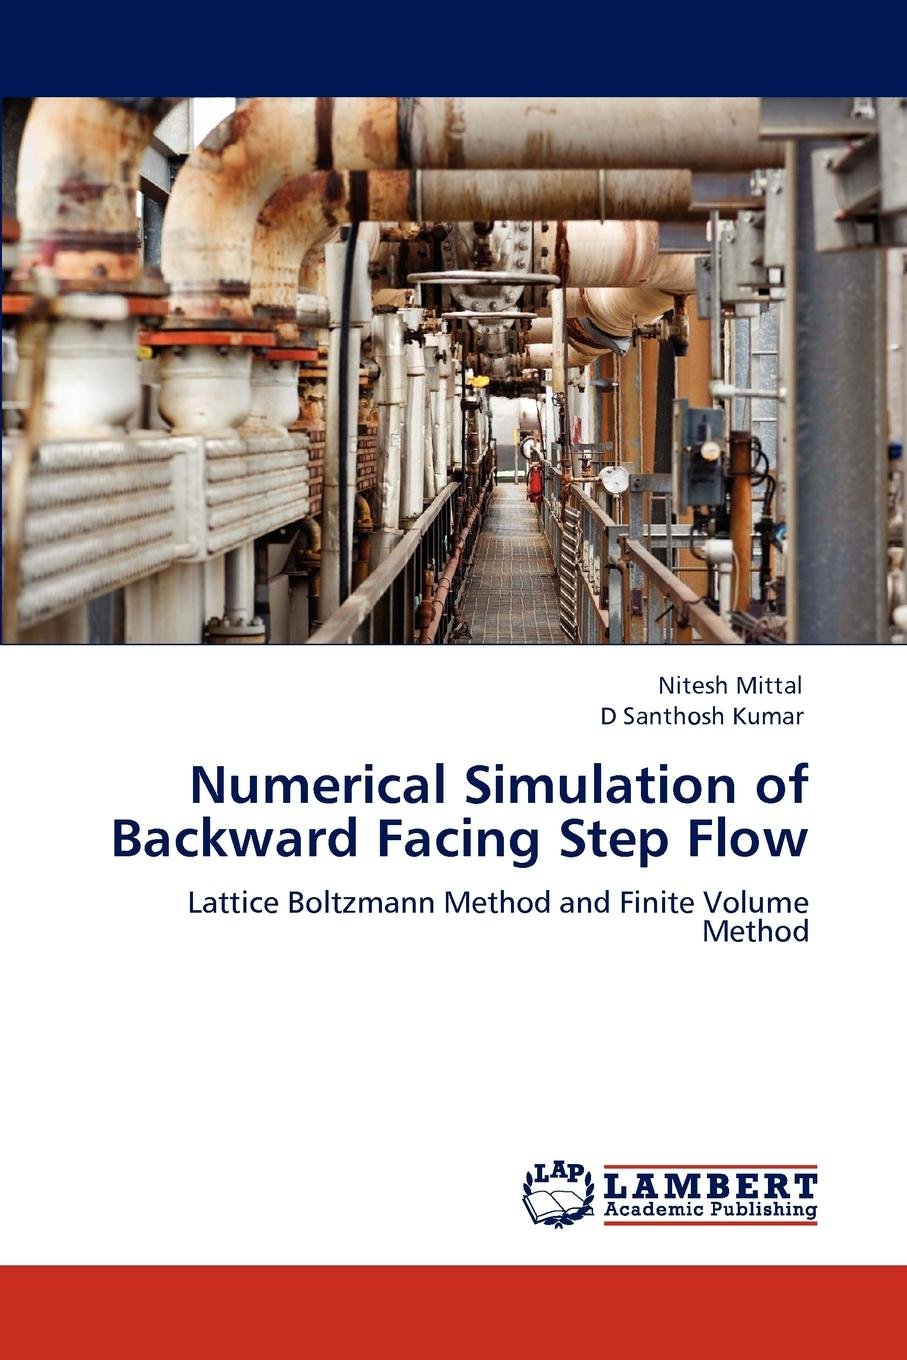 Nitesh Mittal, D Santhosh Kumar Numerical Simulation of Backward Facing Step Flow недорго, оригинальная цена